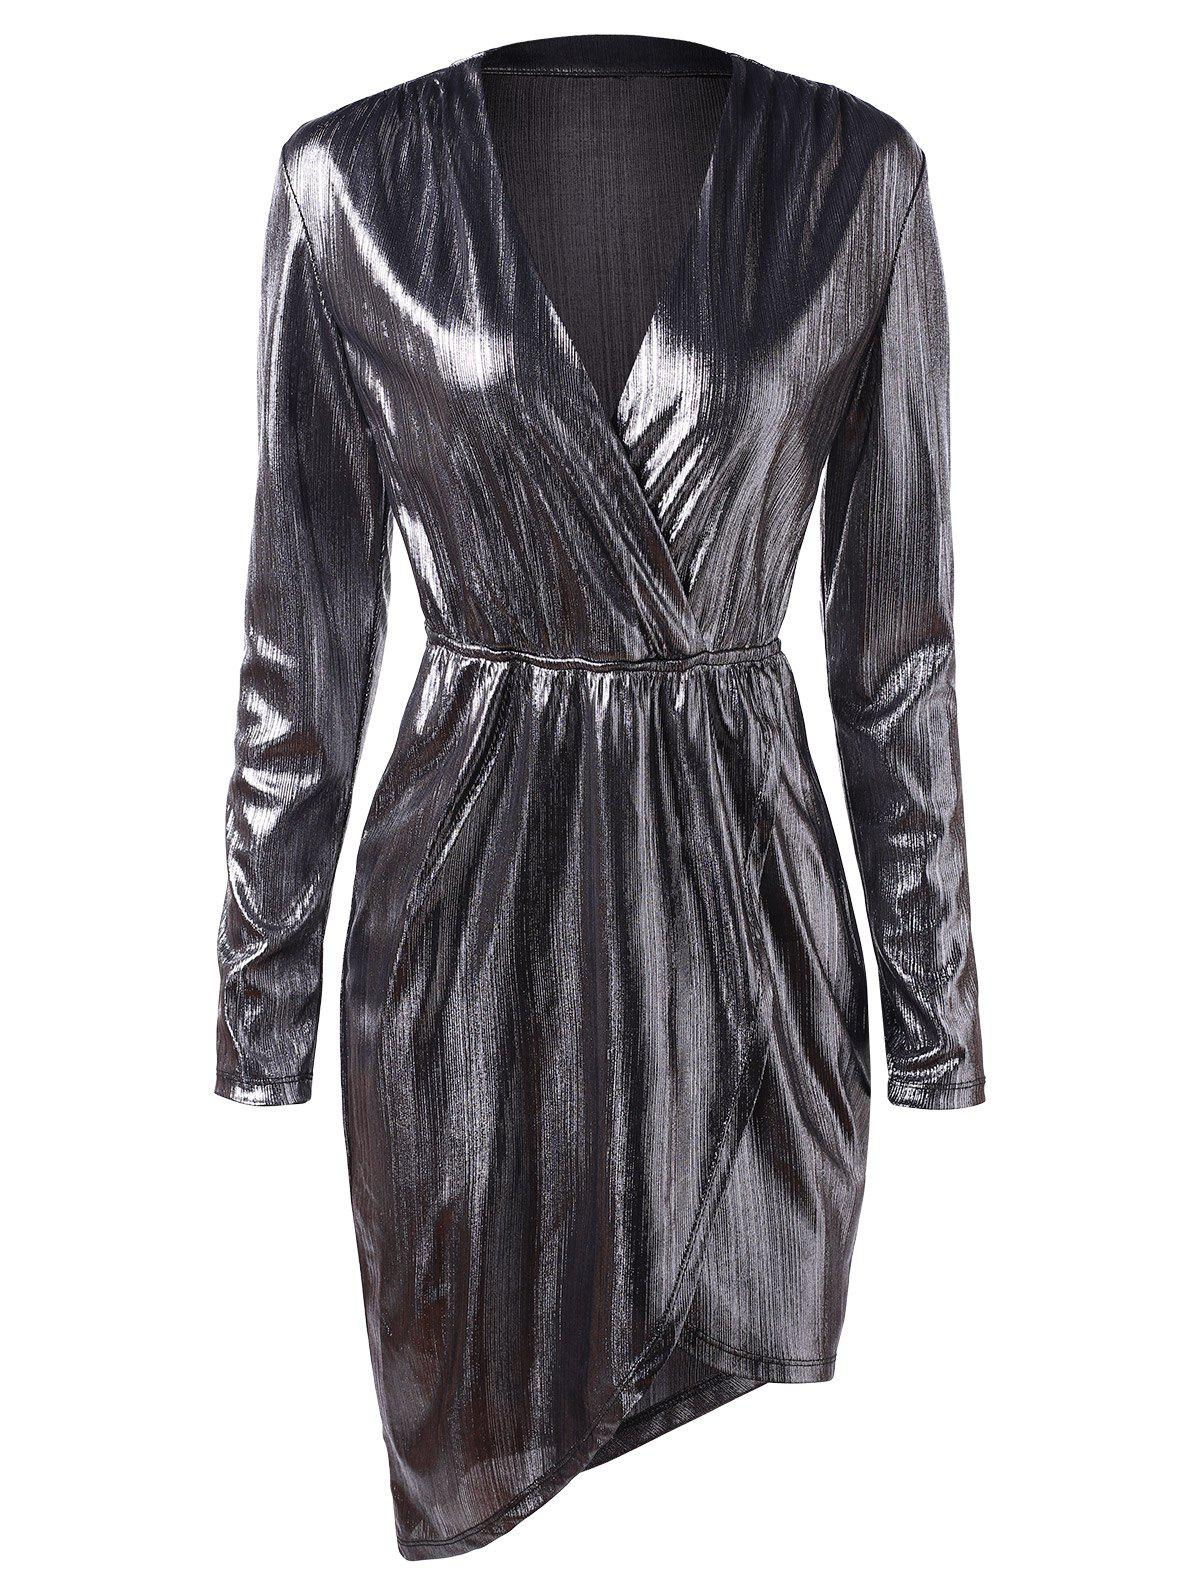 Shop Plunging Neck Metallic Party Dress